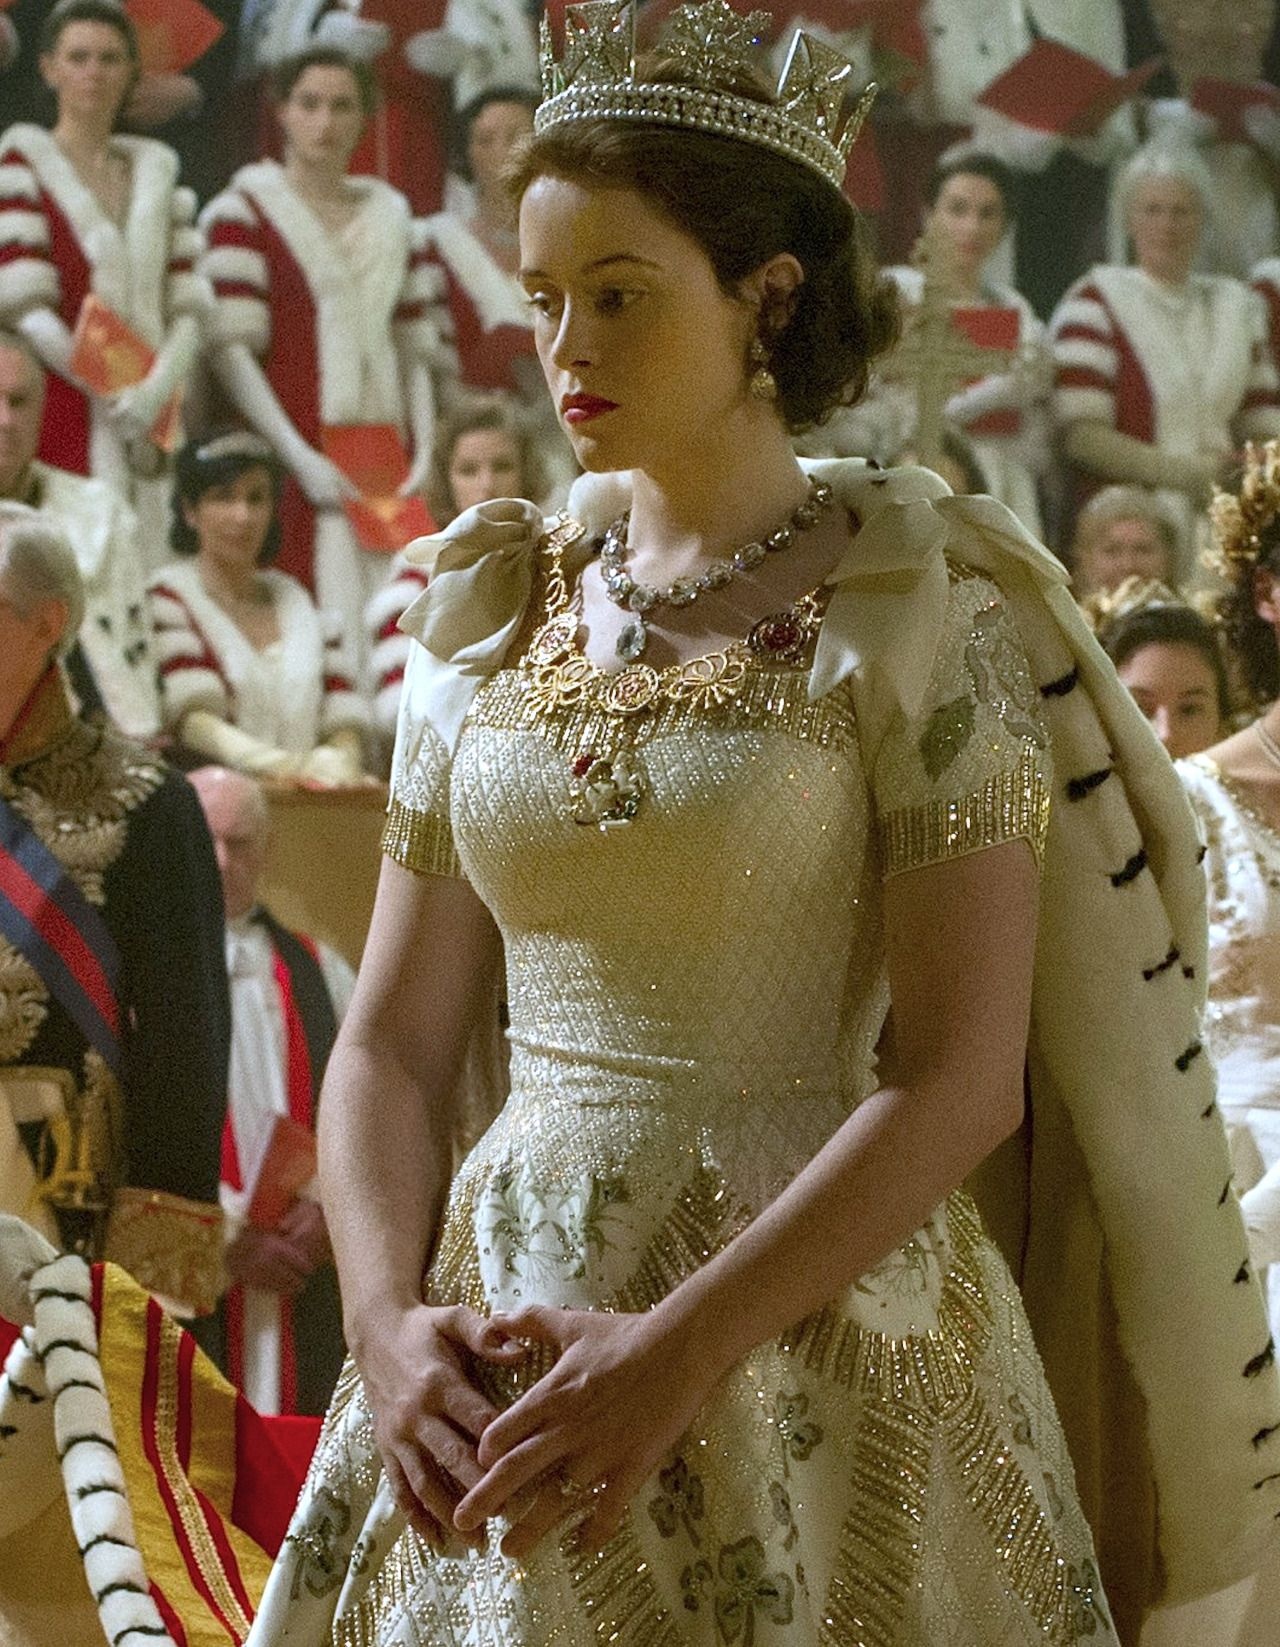 claire foy as queen elizabeth ii in the crown 2016 the crown the crown series crown. Black Bedroom Furniture Sets. Home Design Ideas